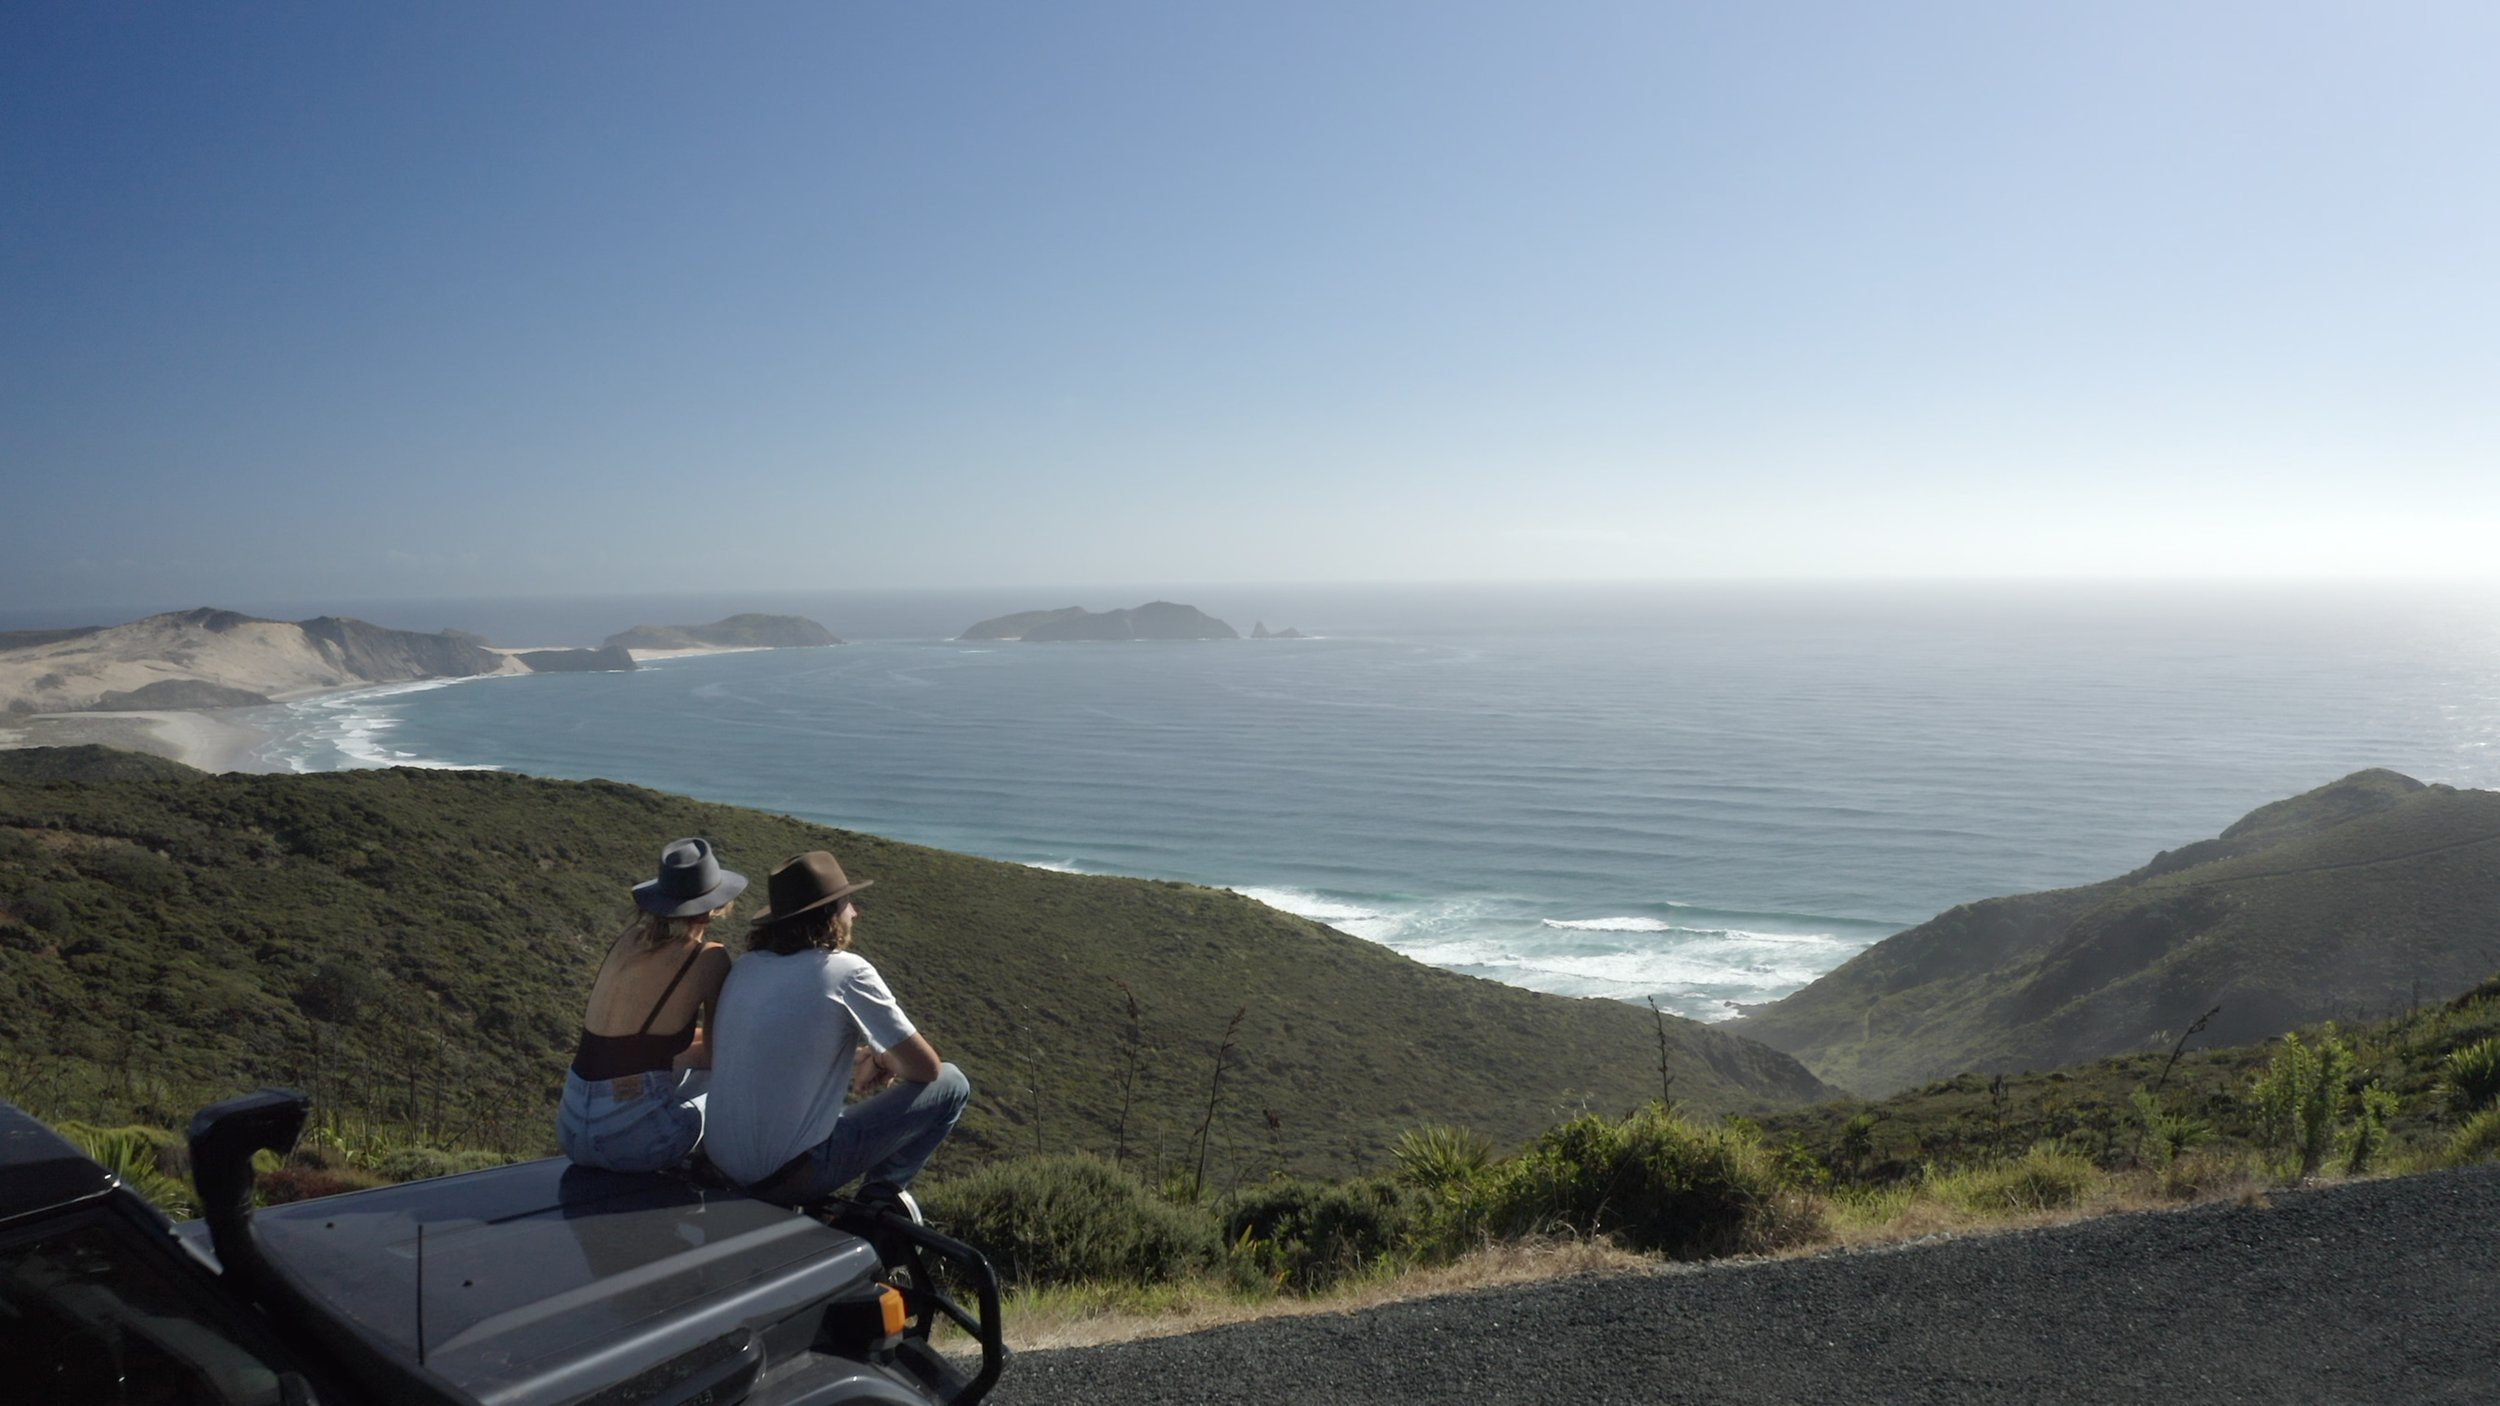 Quiver South Camper Rental NZ - Book Your Trip